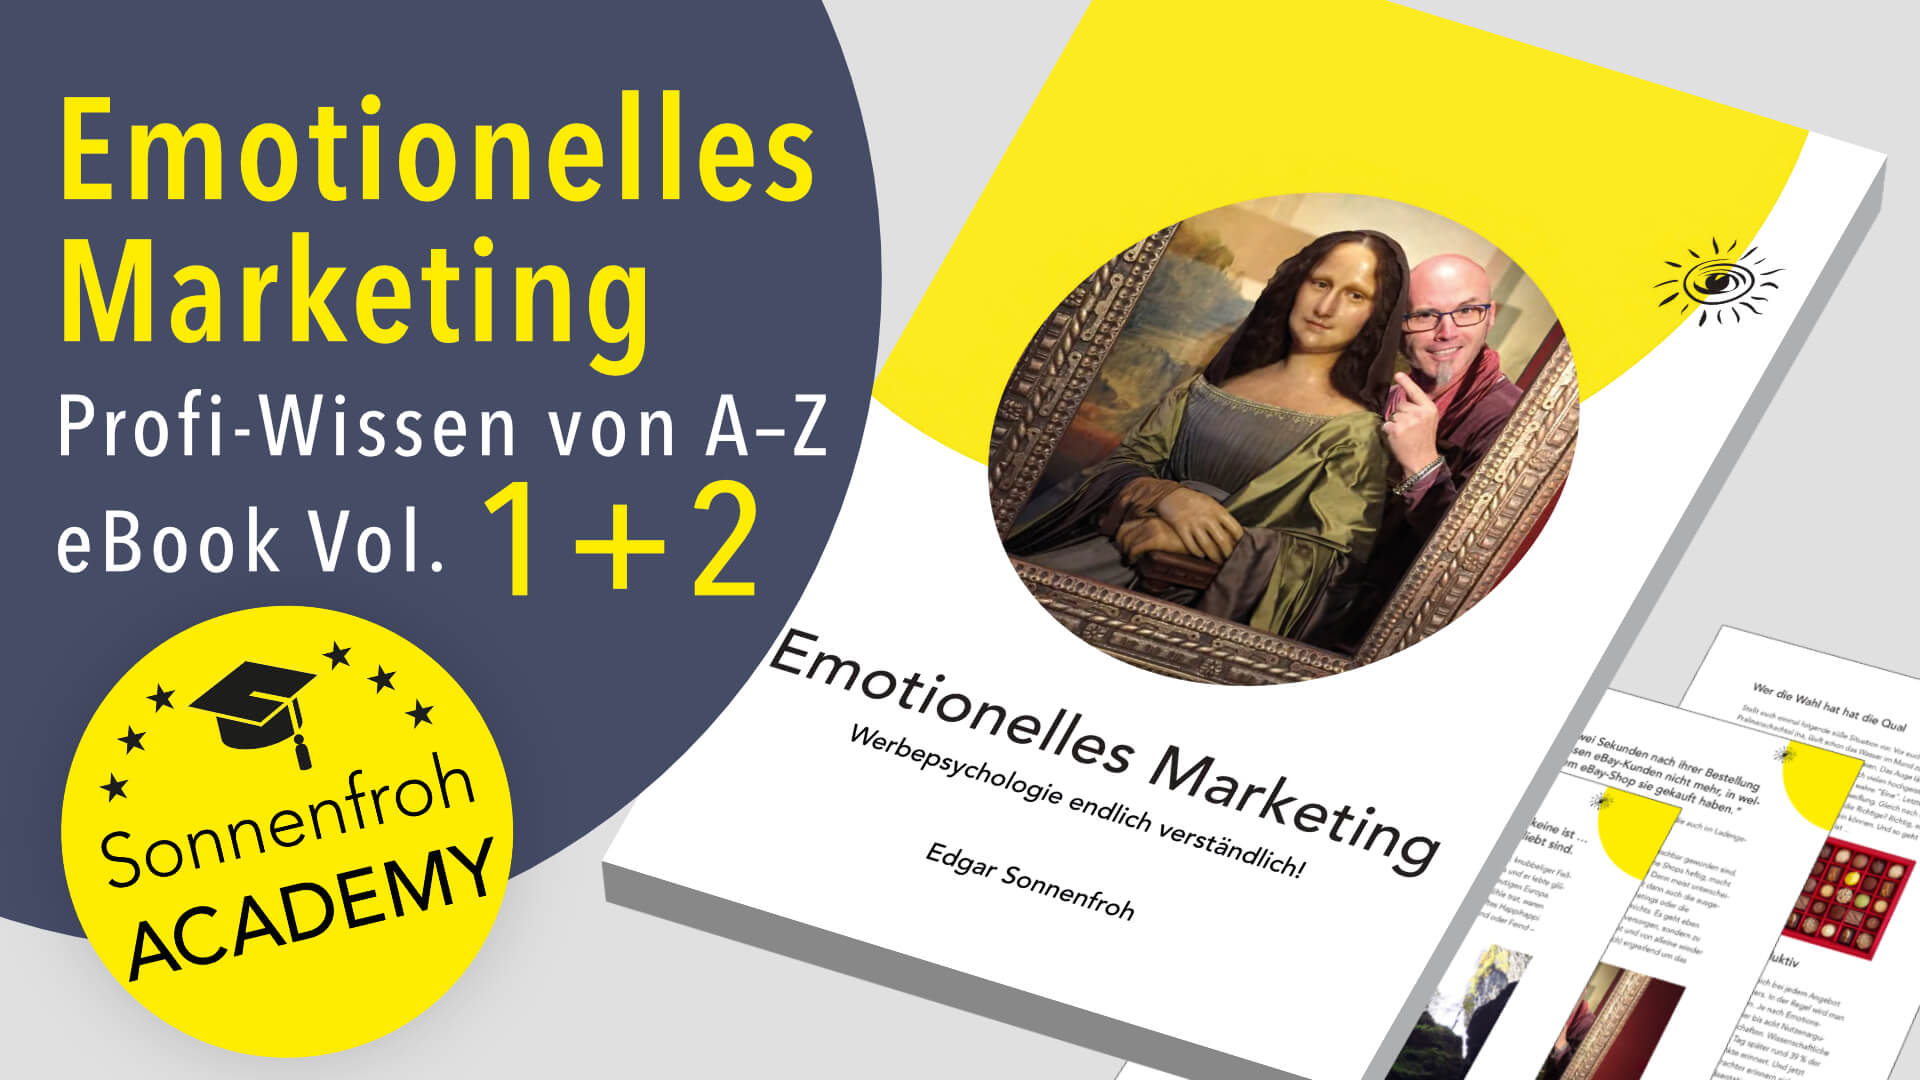 eBook - Emotionelles Marketing - Sonnenfroh ACADEMY